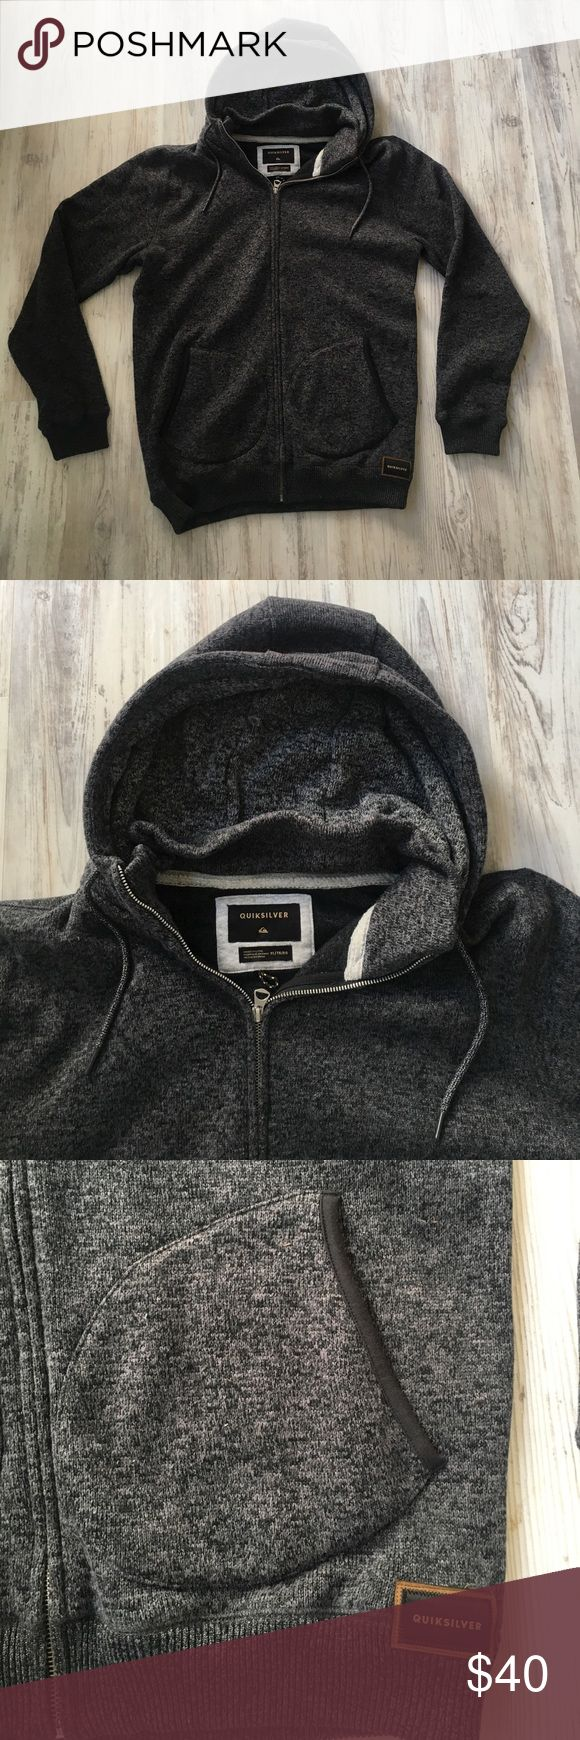 Quiksilver Zip Up Hoodie Multi Colored black and gray zip up hoodie from Quicksilver. Super cozy. Hoodie has a nice thick collar inner lining for extra warmth !! Quiksilver Sweaters Zip Up